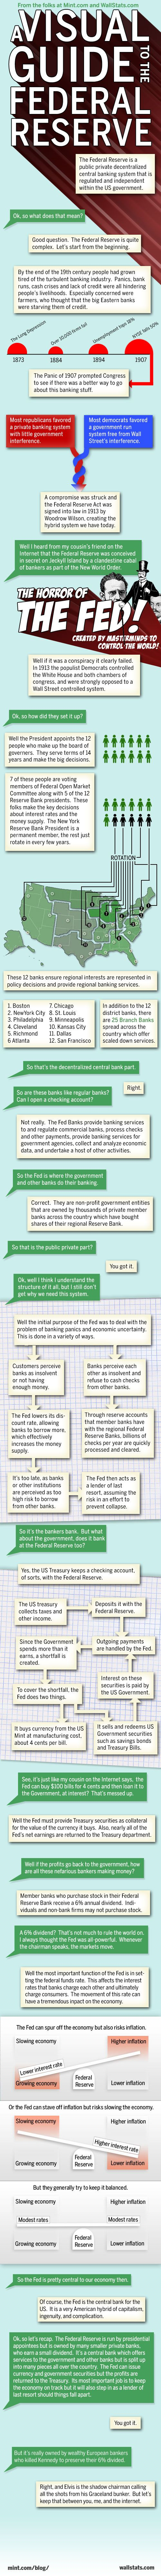 How The Federal Reserve System